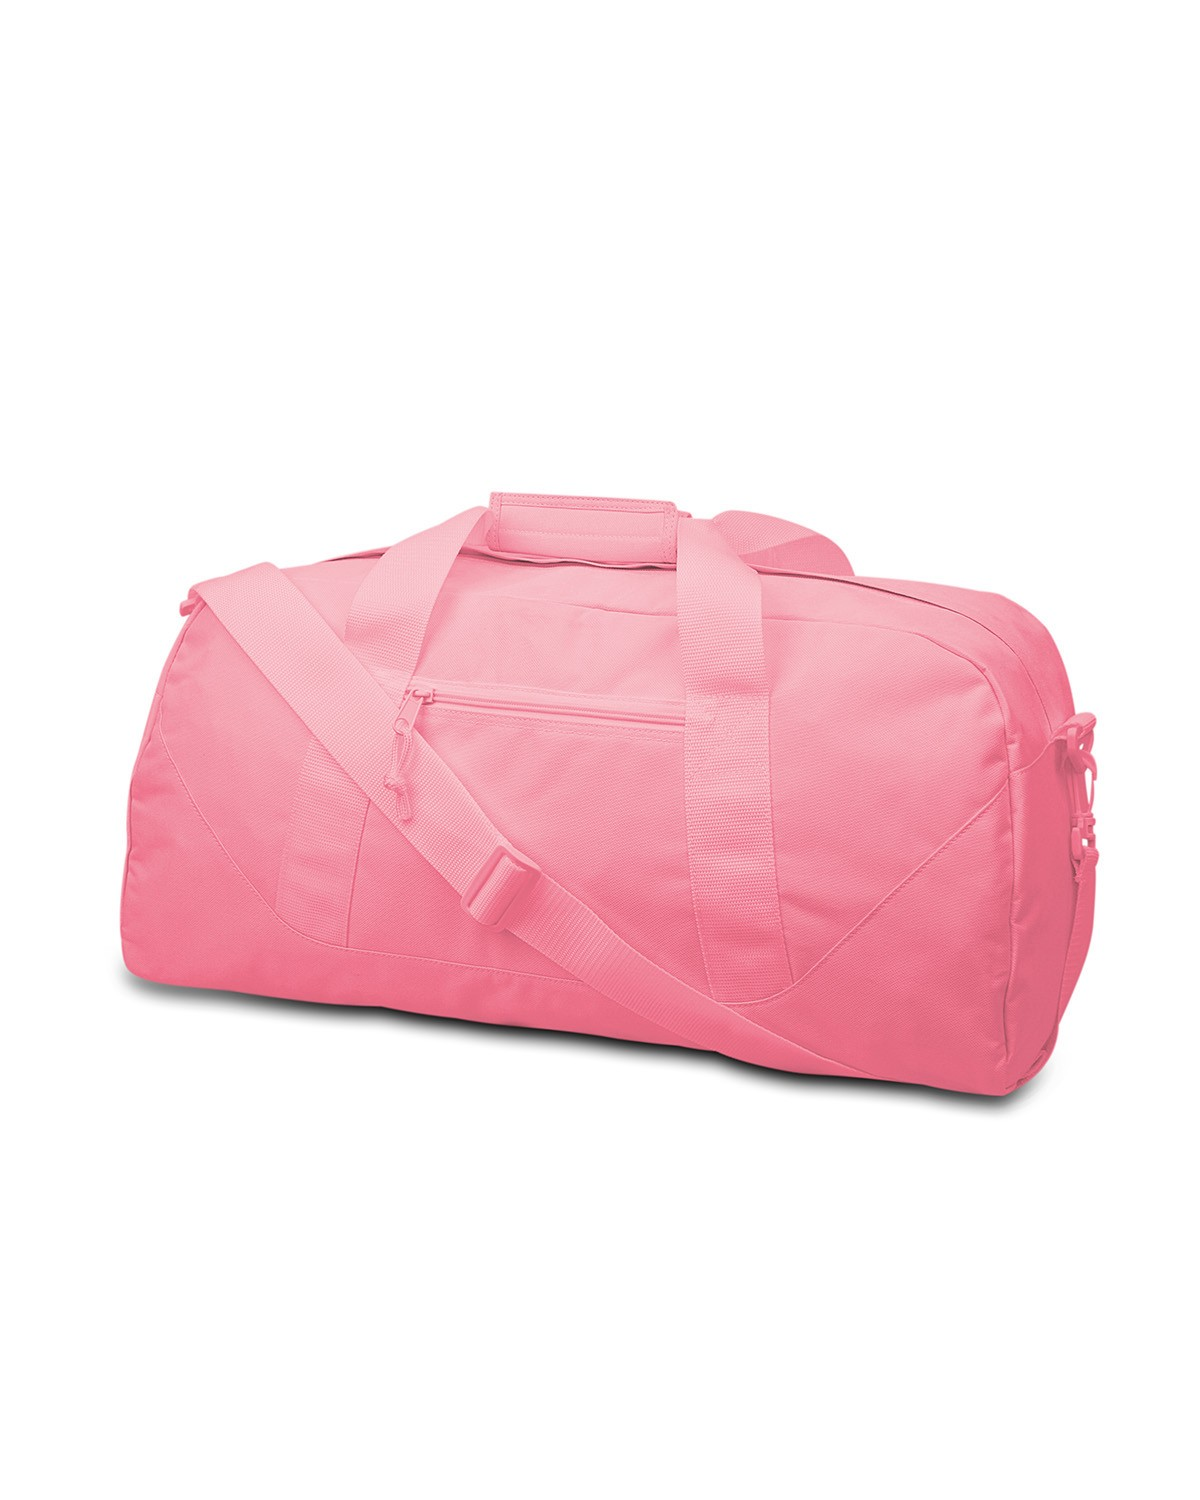 8806 Liberty Bags LIGHT PINK